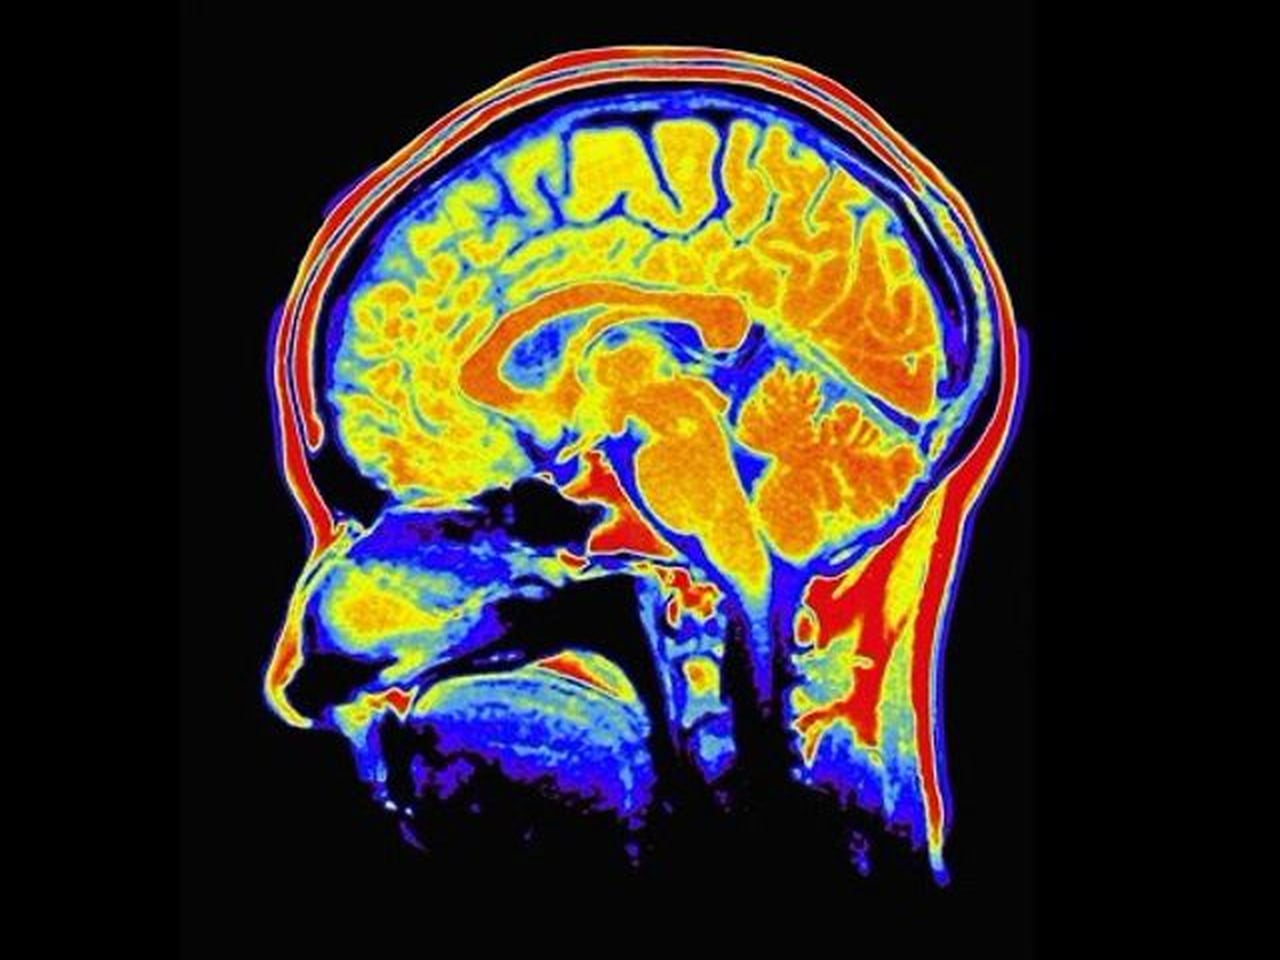 Neurotypical subjective experience is caused by a hippocampal ...